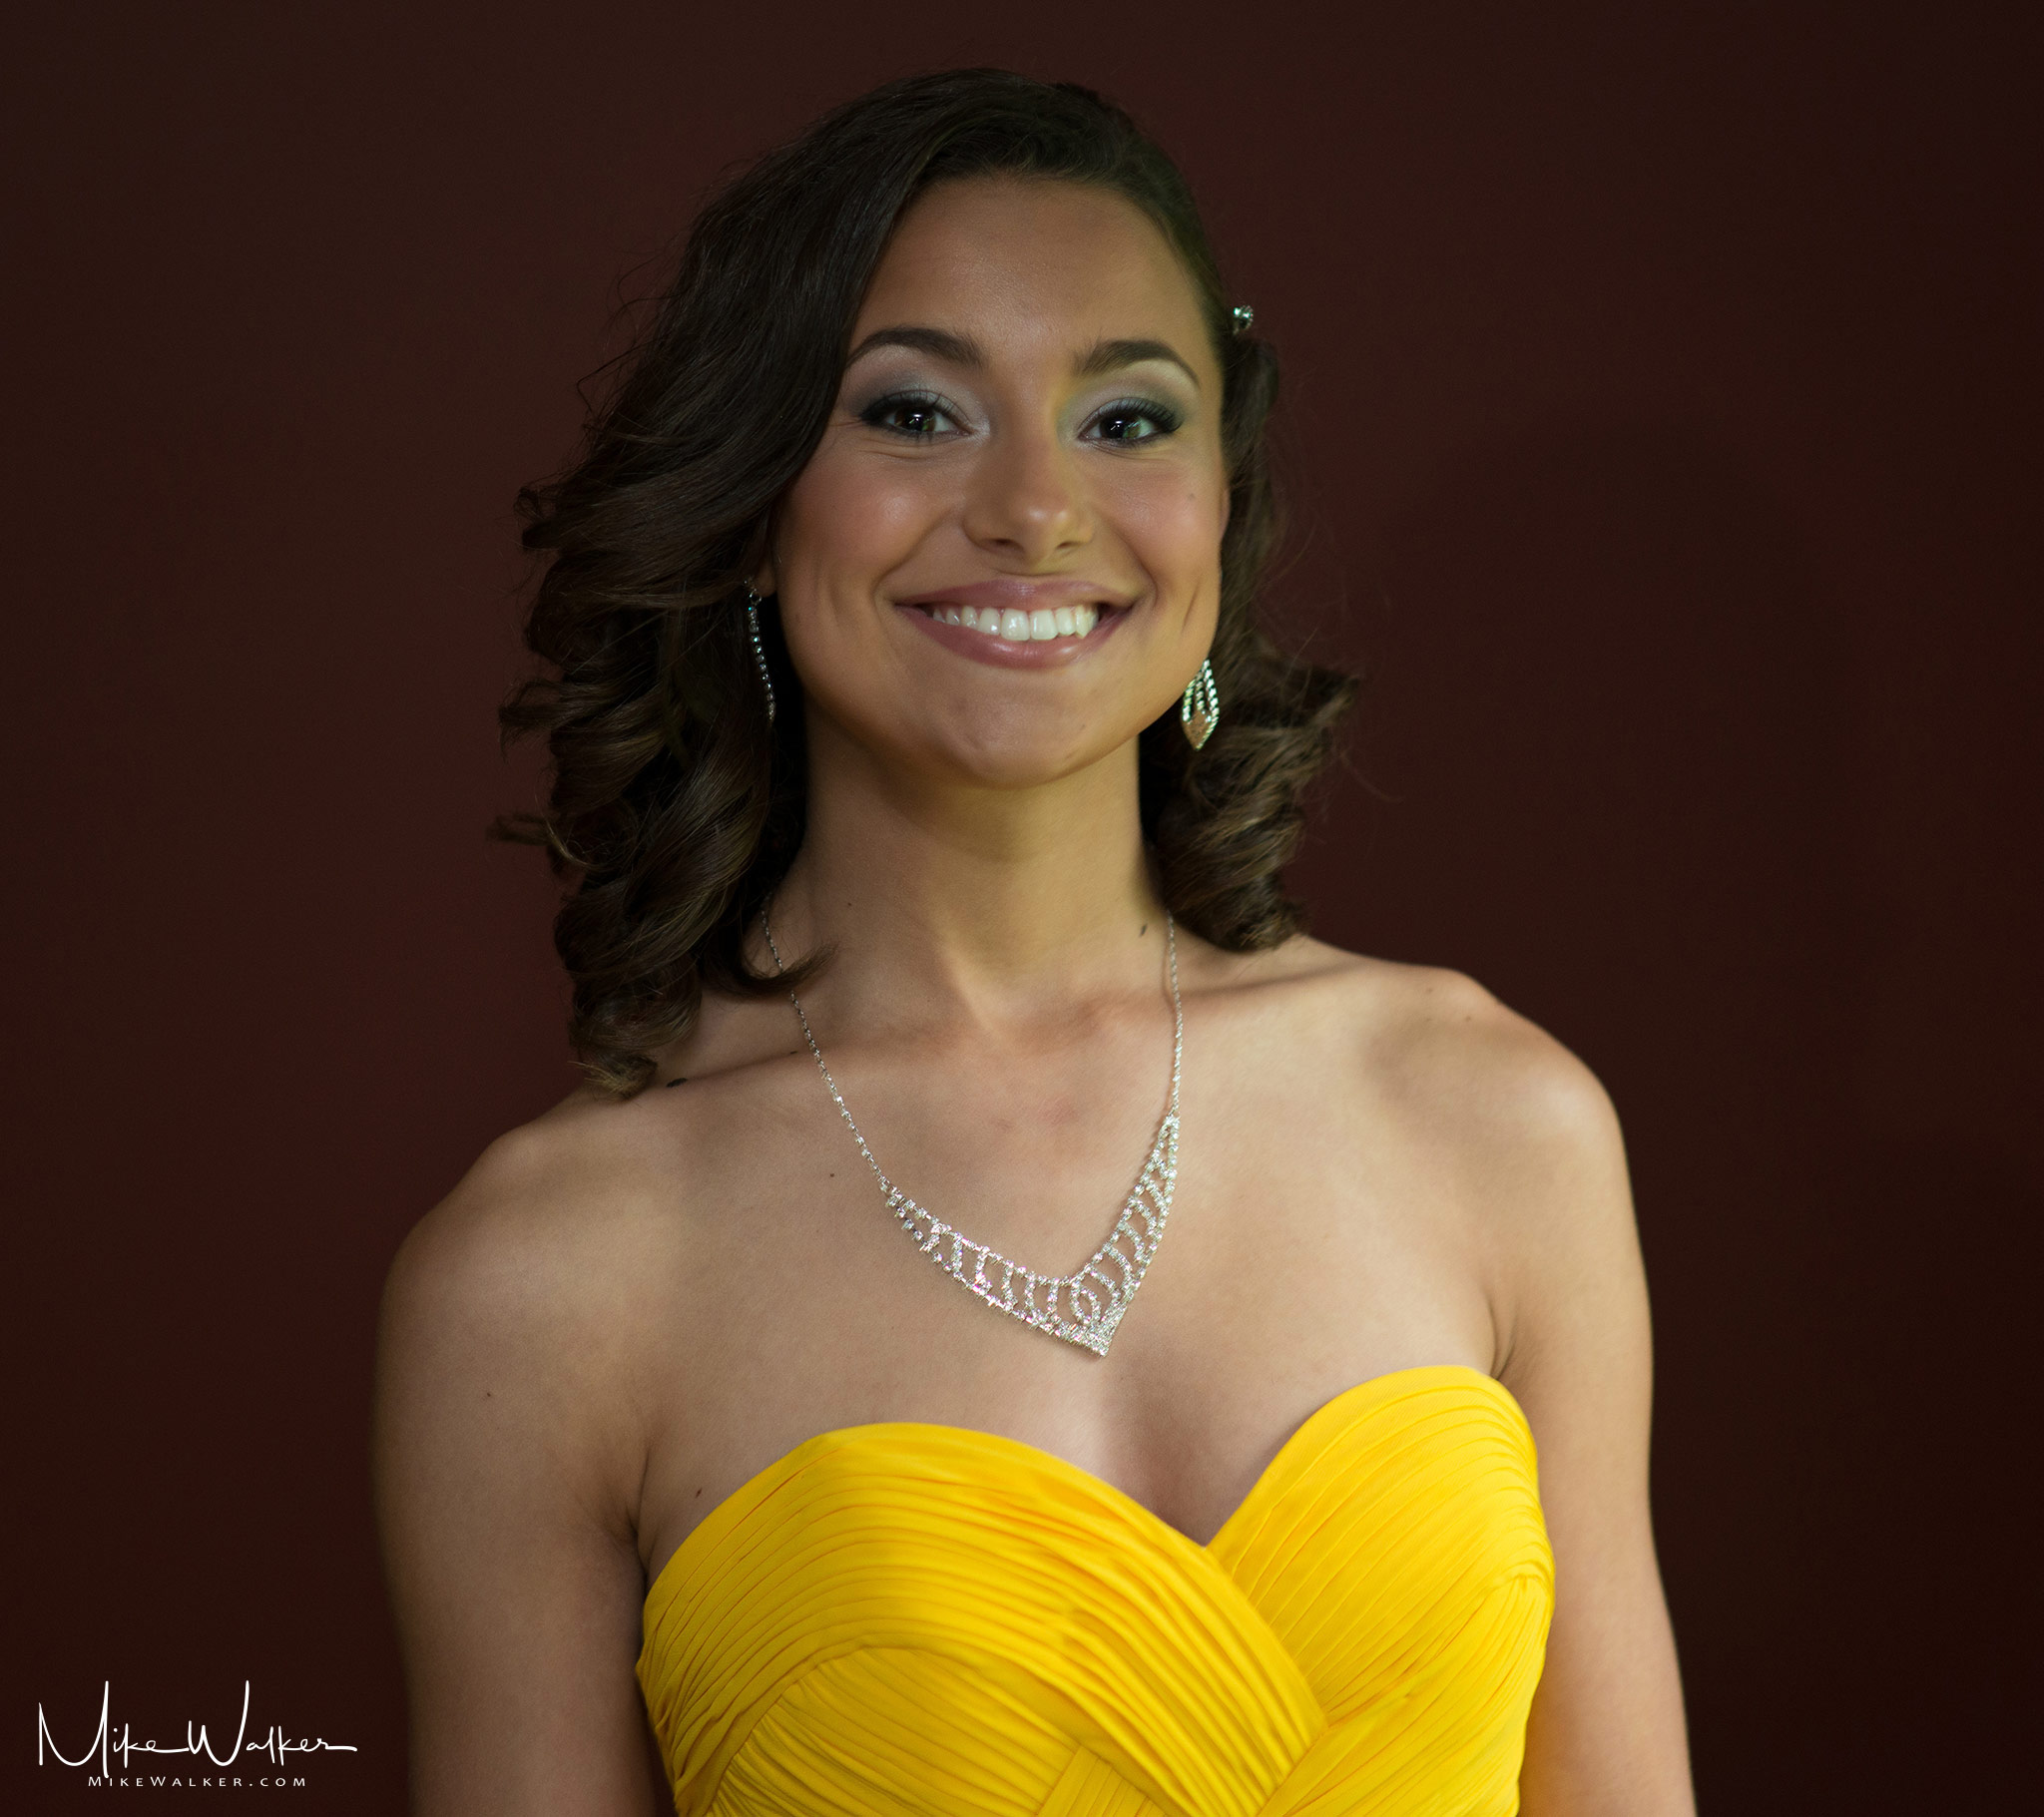 Young woman in a prom dress. Family photography by Mike Walker.